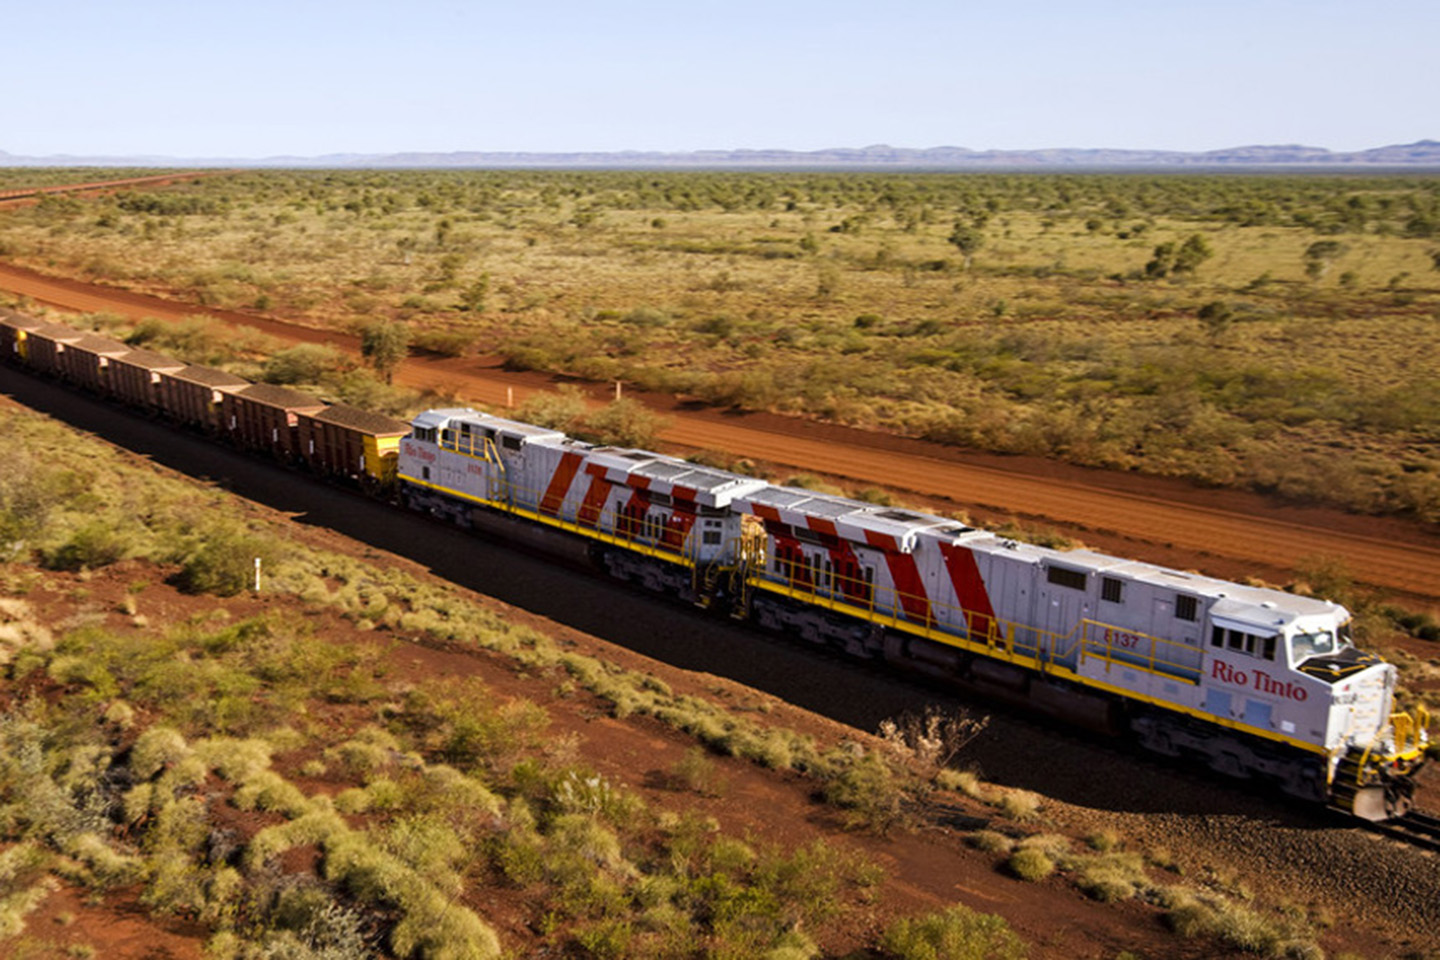 Rio Tinto gets greenlight for automated iron ore trains in Australia